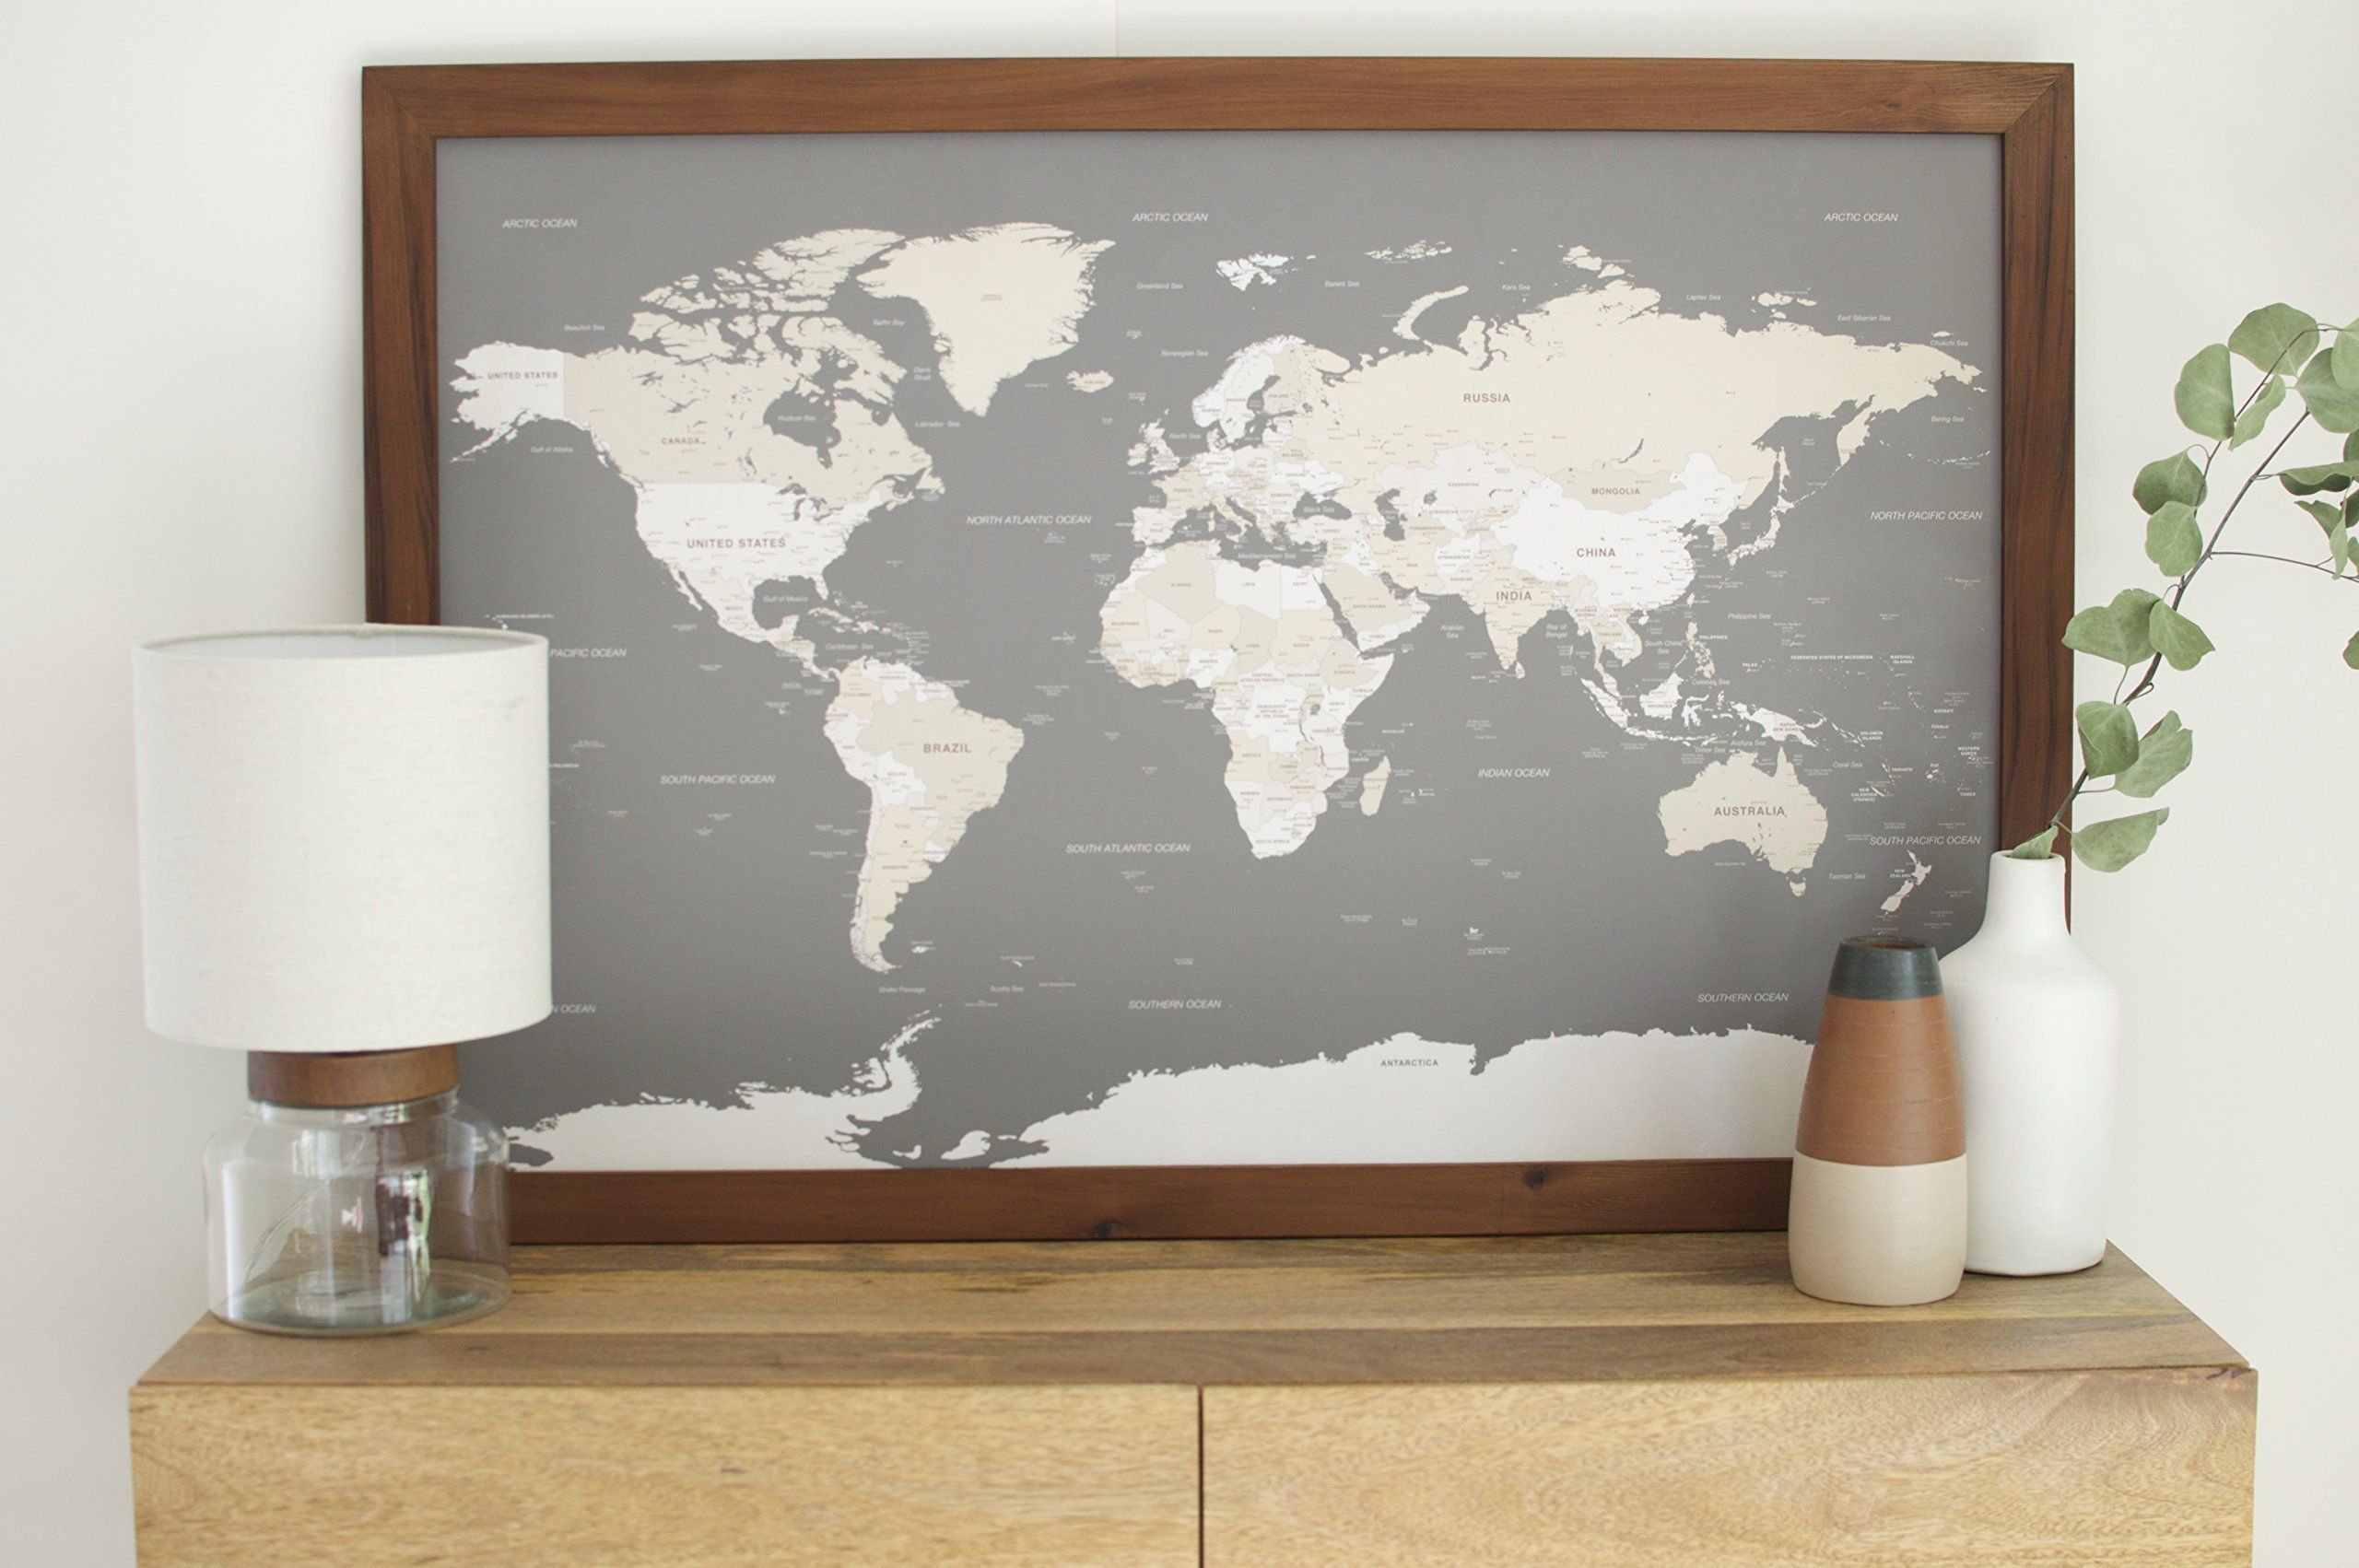 Classic world map large push pin travel map framed world map in classic world map large push pin travel map framed world map in handcrafted wood frame 24x36 our original world push pin travel map for reminiscing on gumiabroncs Image collections